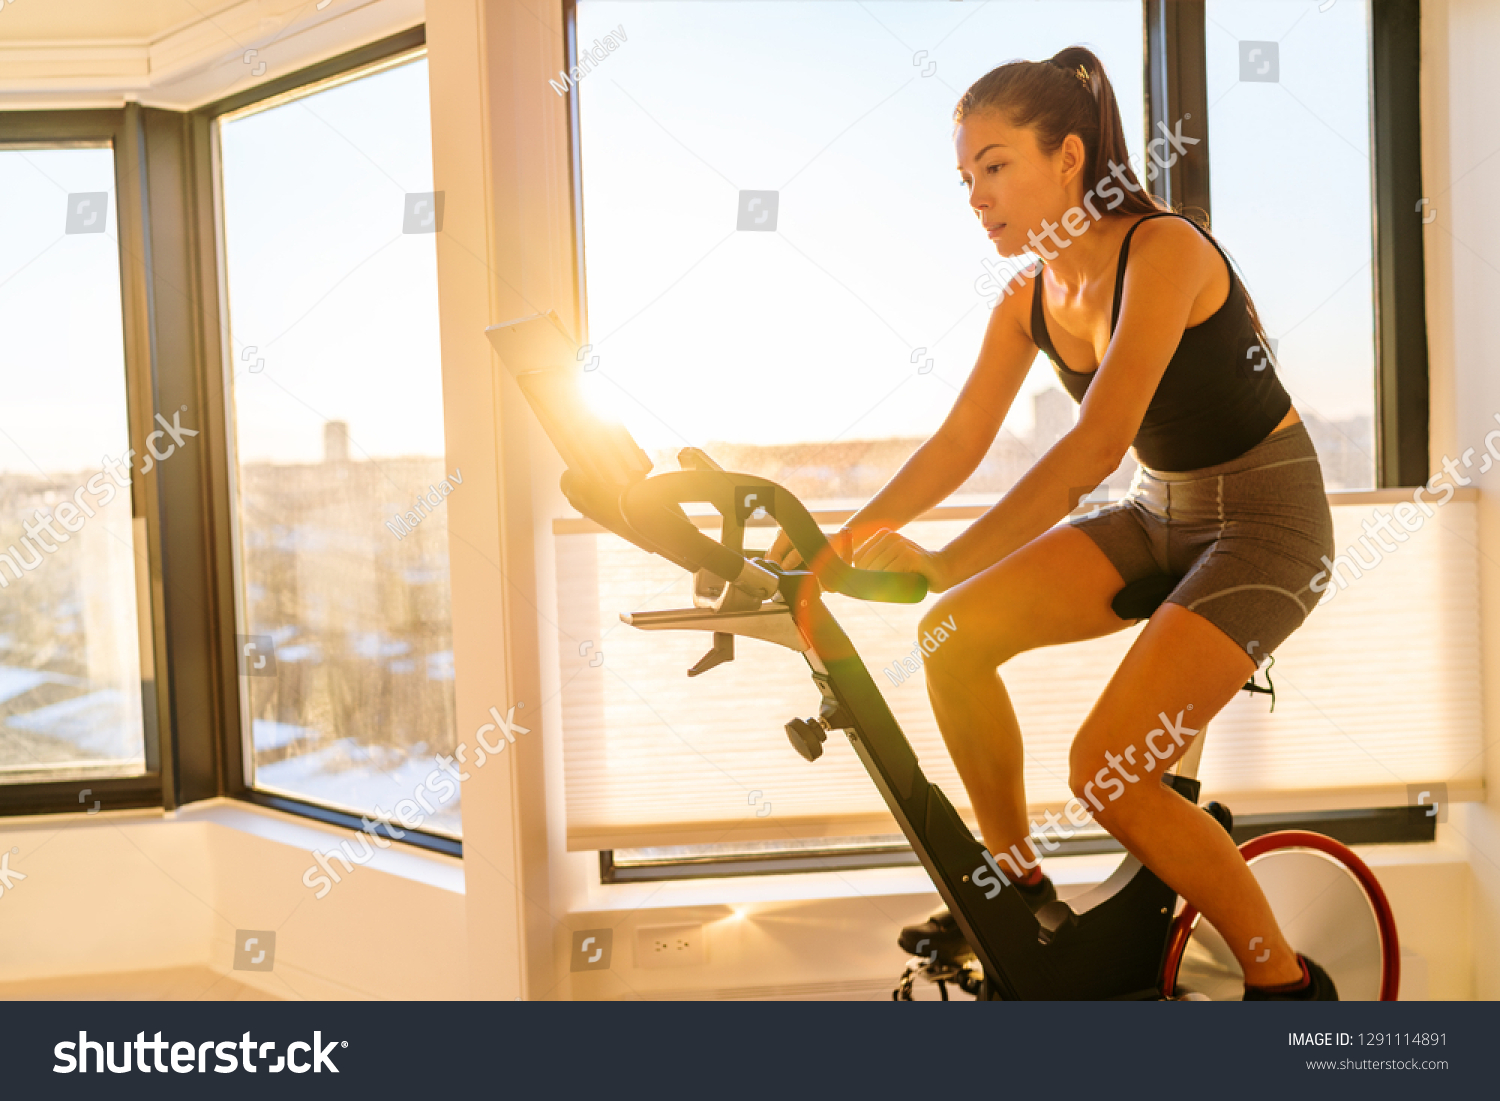 Home fitness workout woman training on smart stationary bike indoors watching screen connected online to live streaming subscription service for biking exercise. Young Asian woman athlete. #1291114891